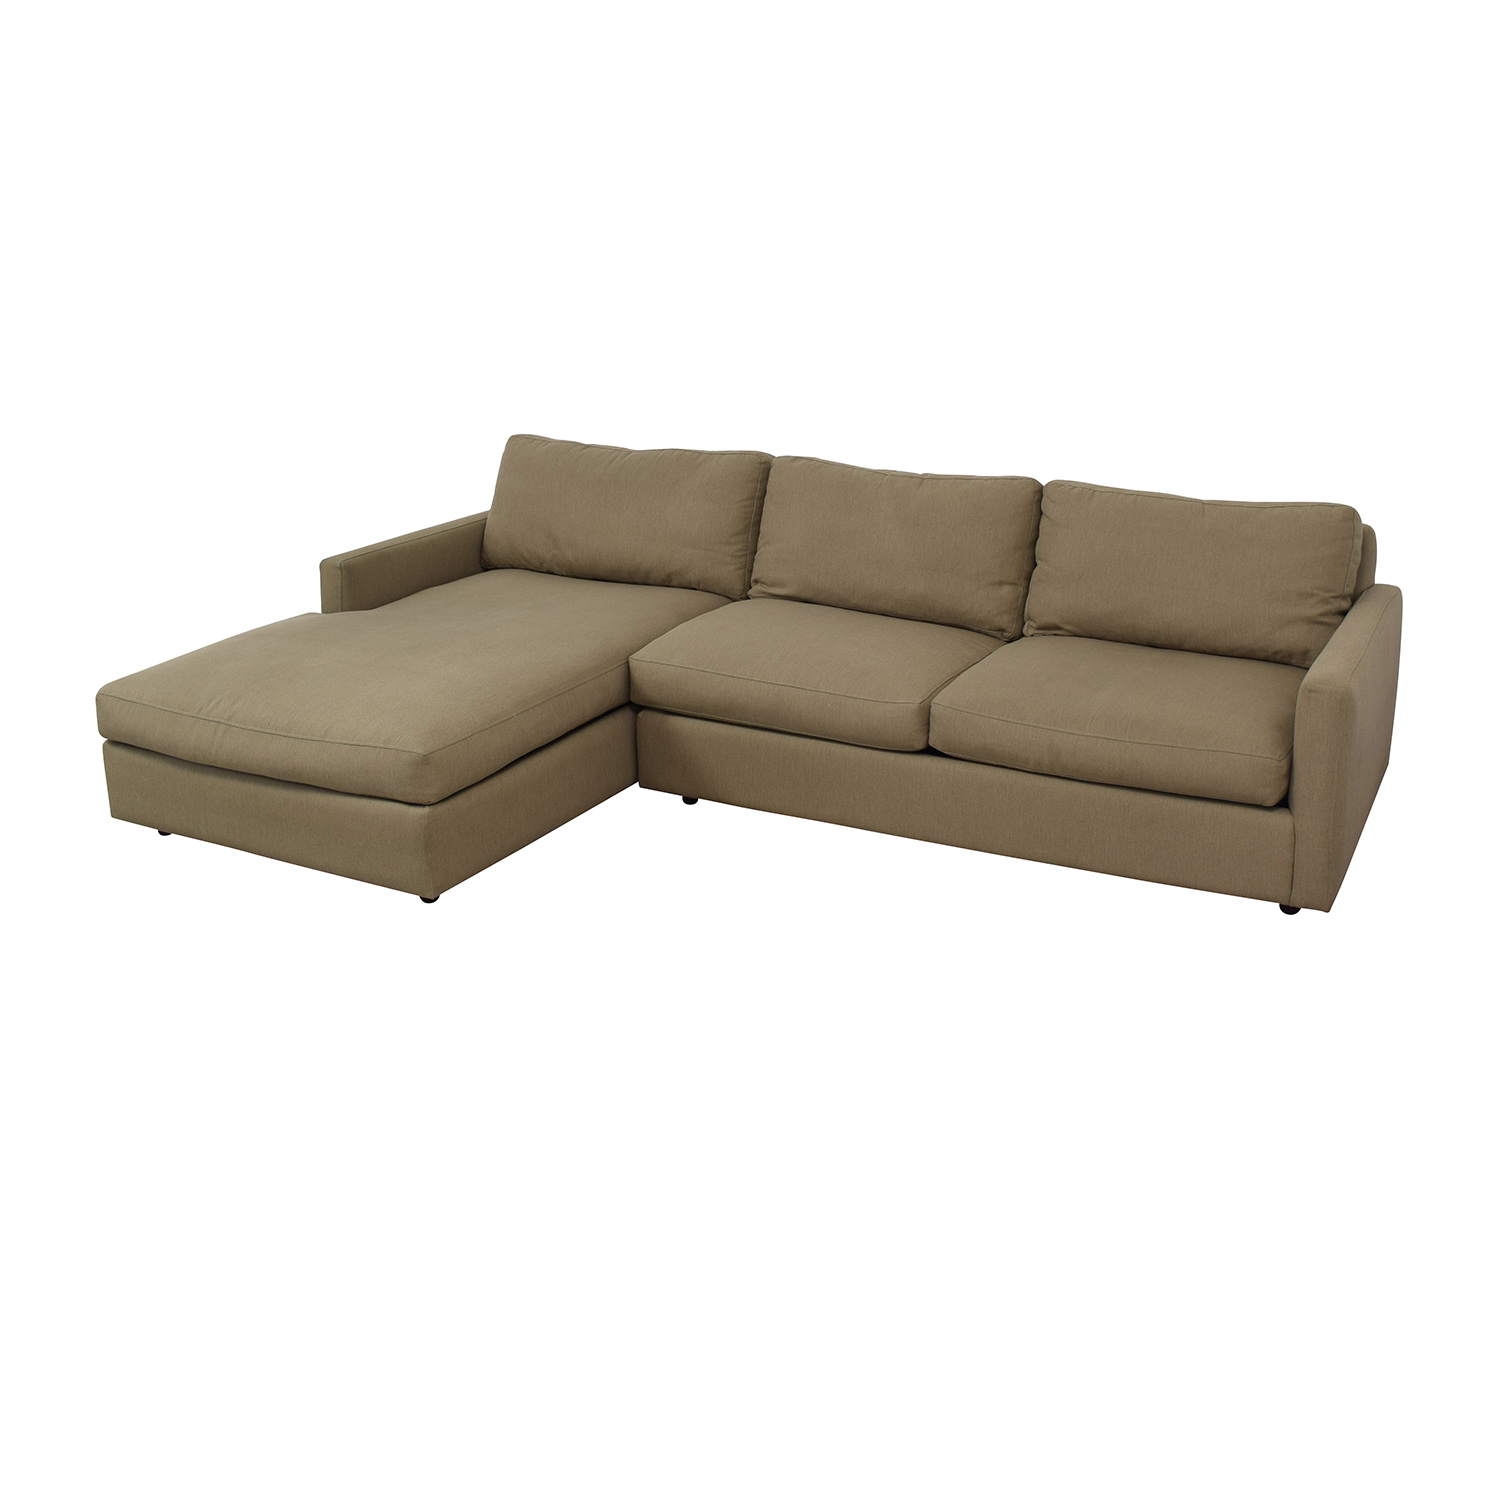 Room & Board Room & Board Easton Sofa with Left-Arm Chaise for sale